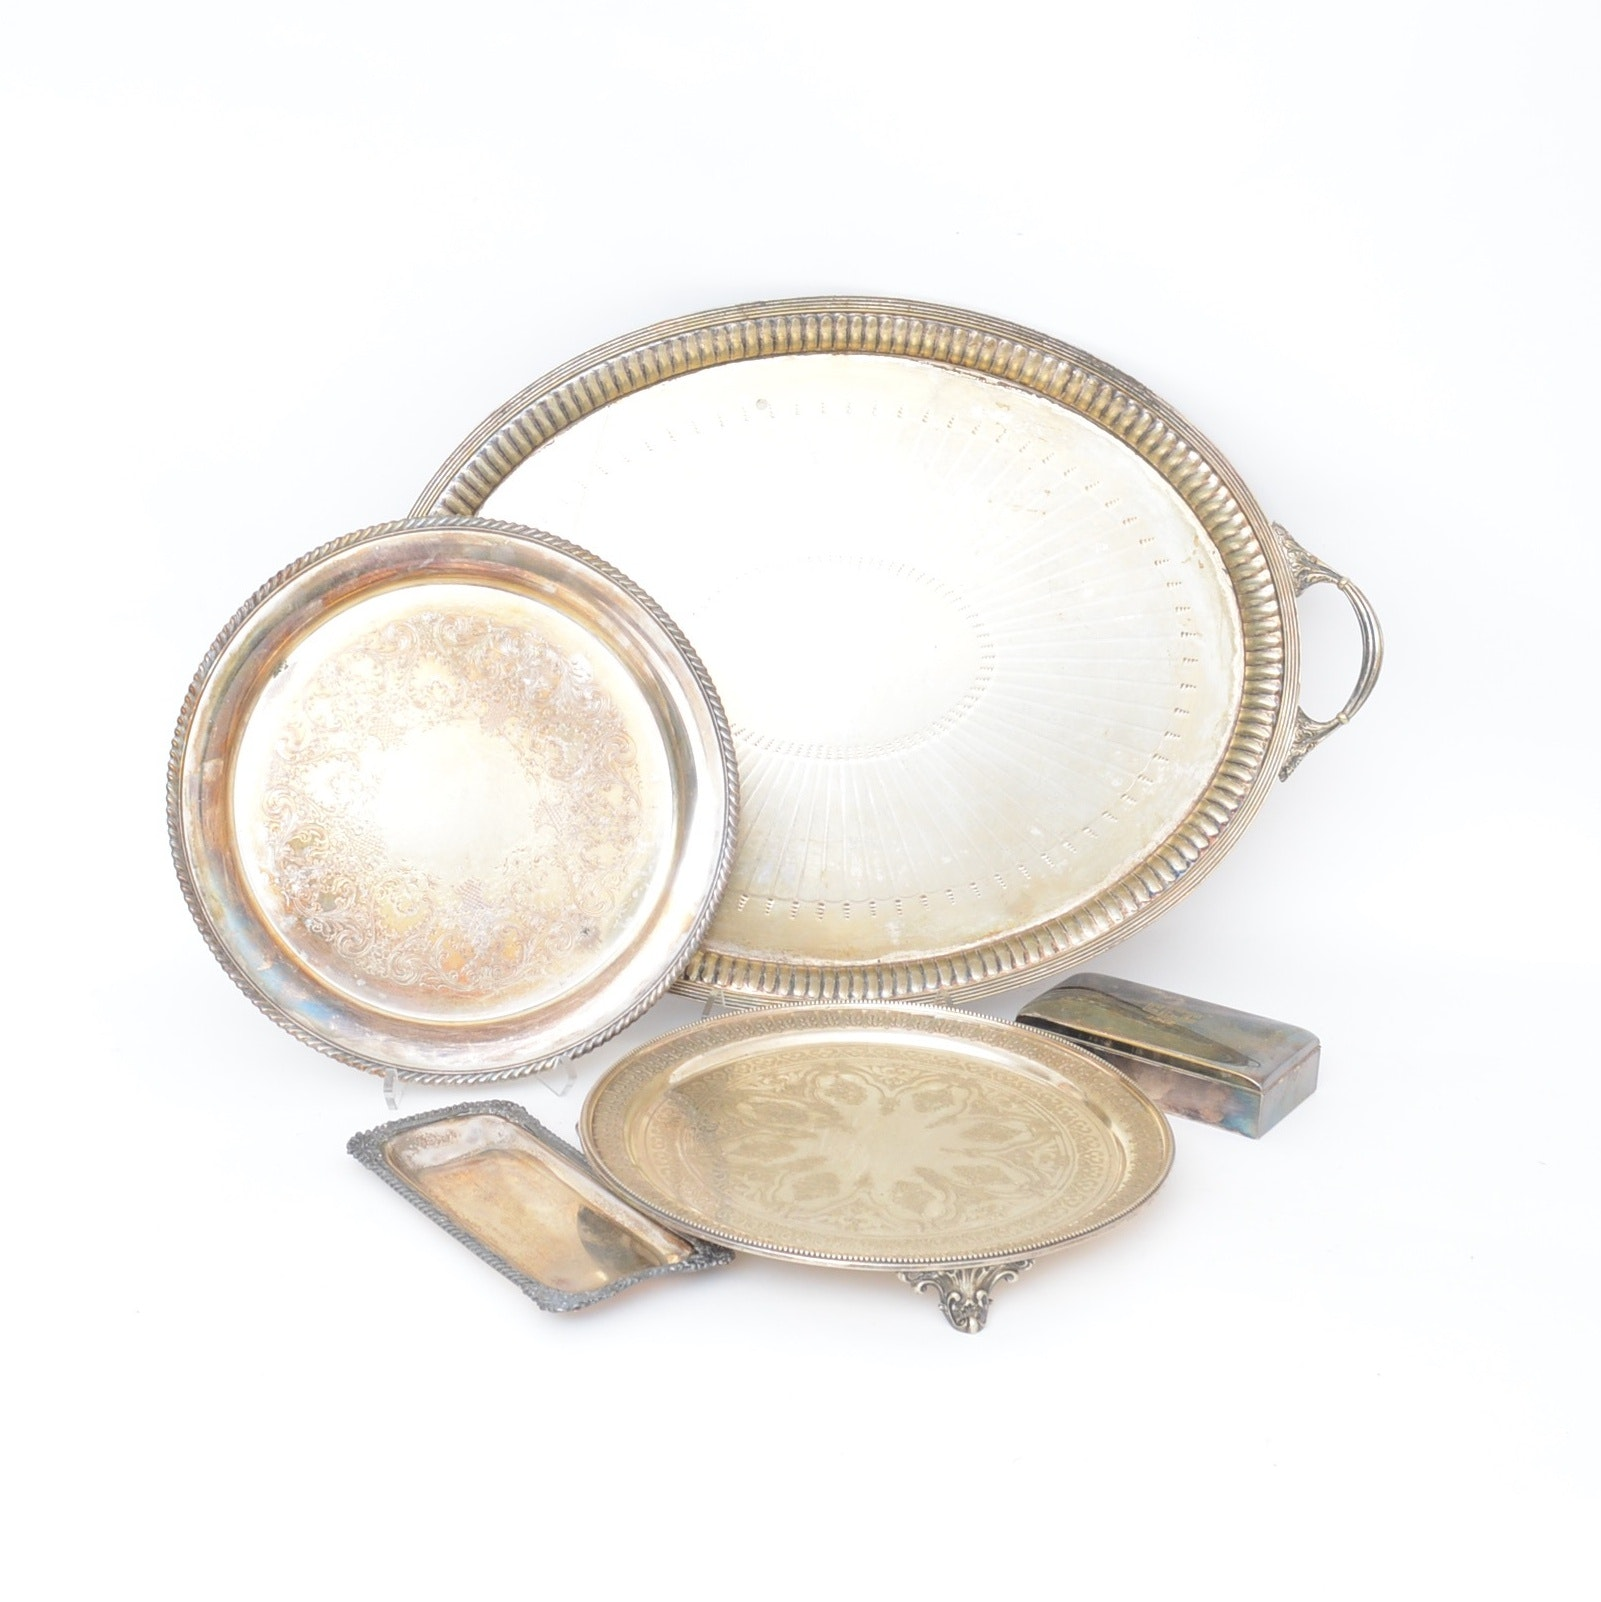 Silver Plate Serveware from Goldsmiths & Silversmiths' Co. and F. B. Rogers